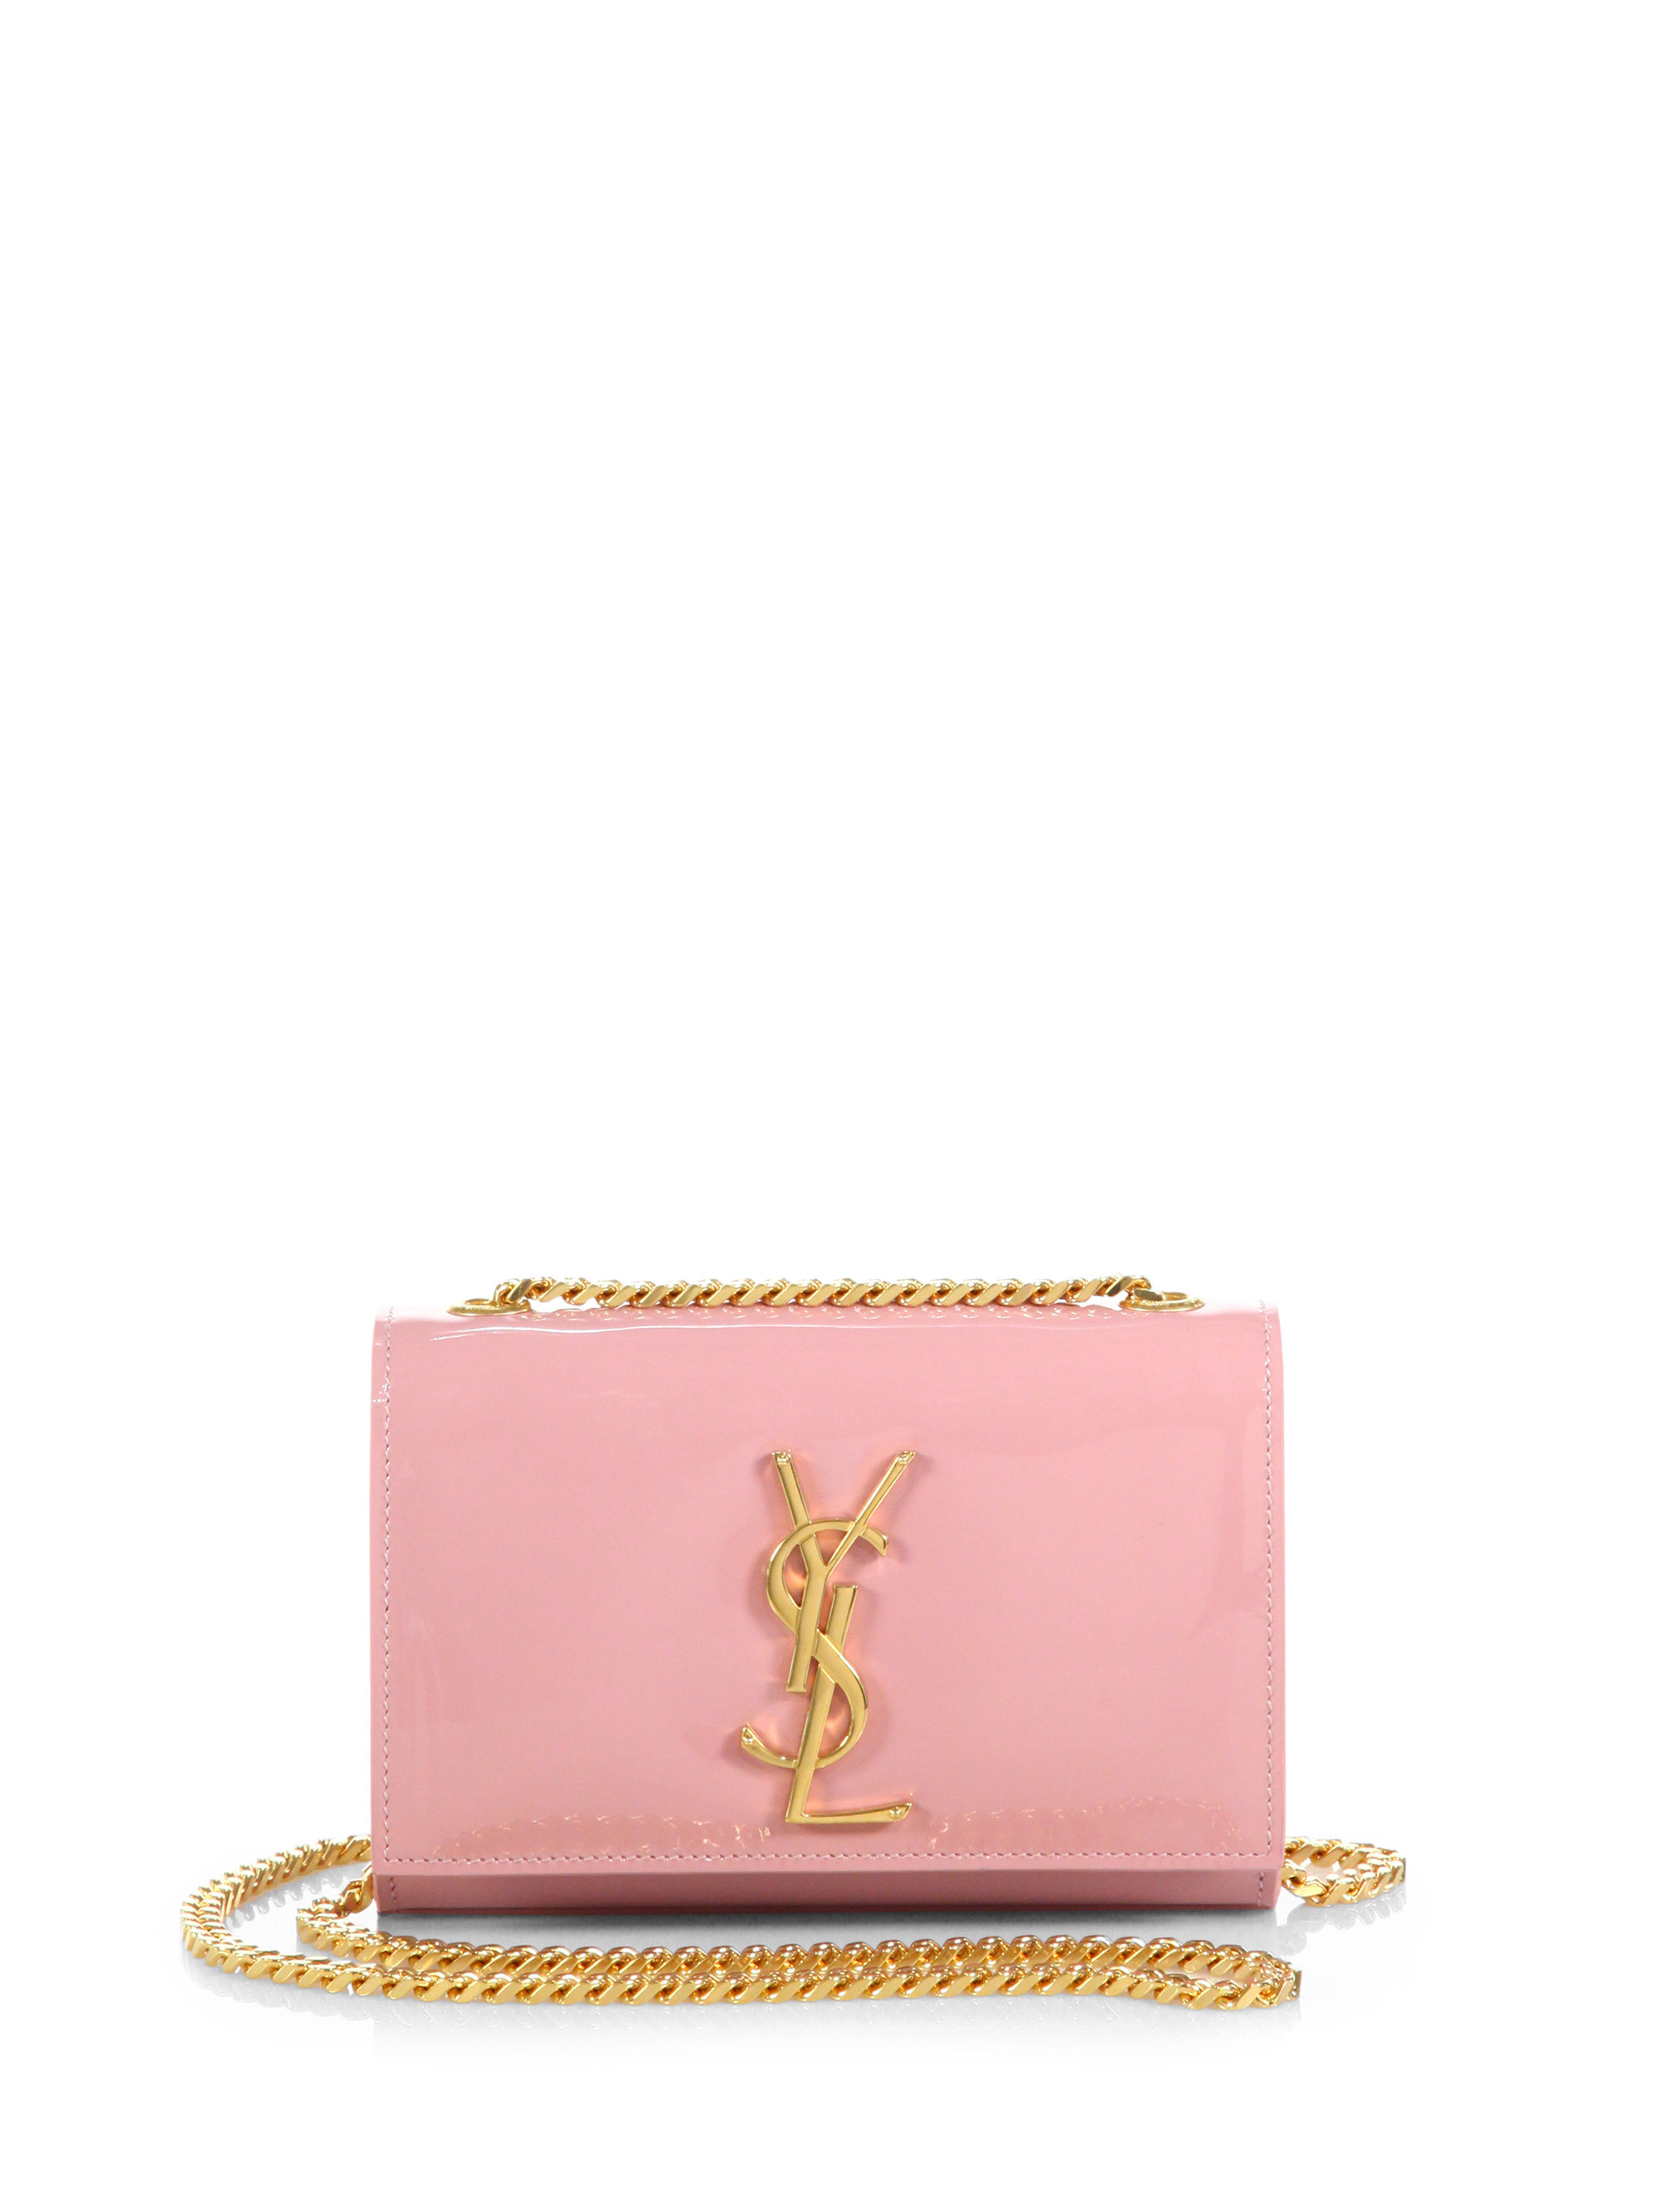 4bba9c7984 Saint laurent Monogram Small Patent Leather Chain Crossbody Bag in . ...